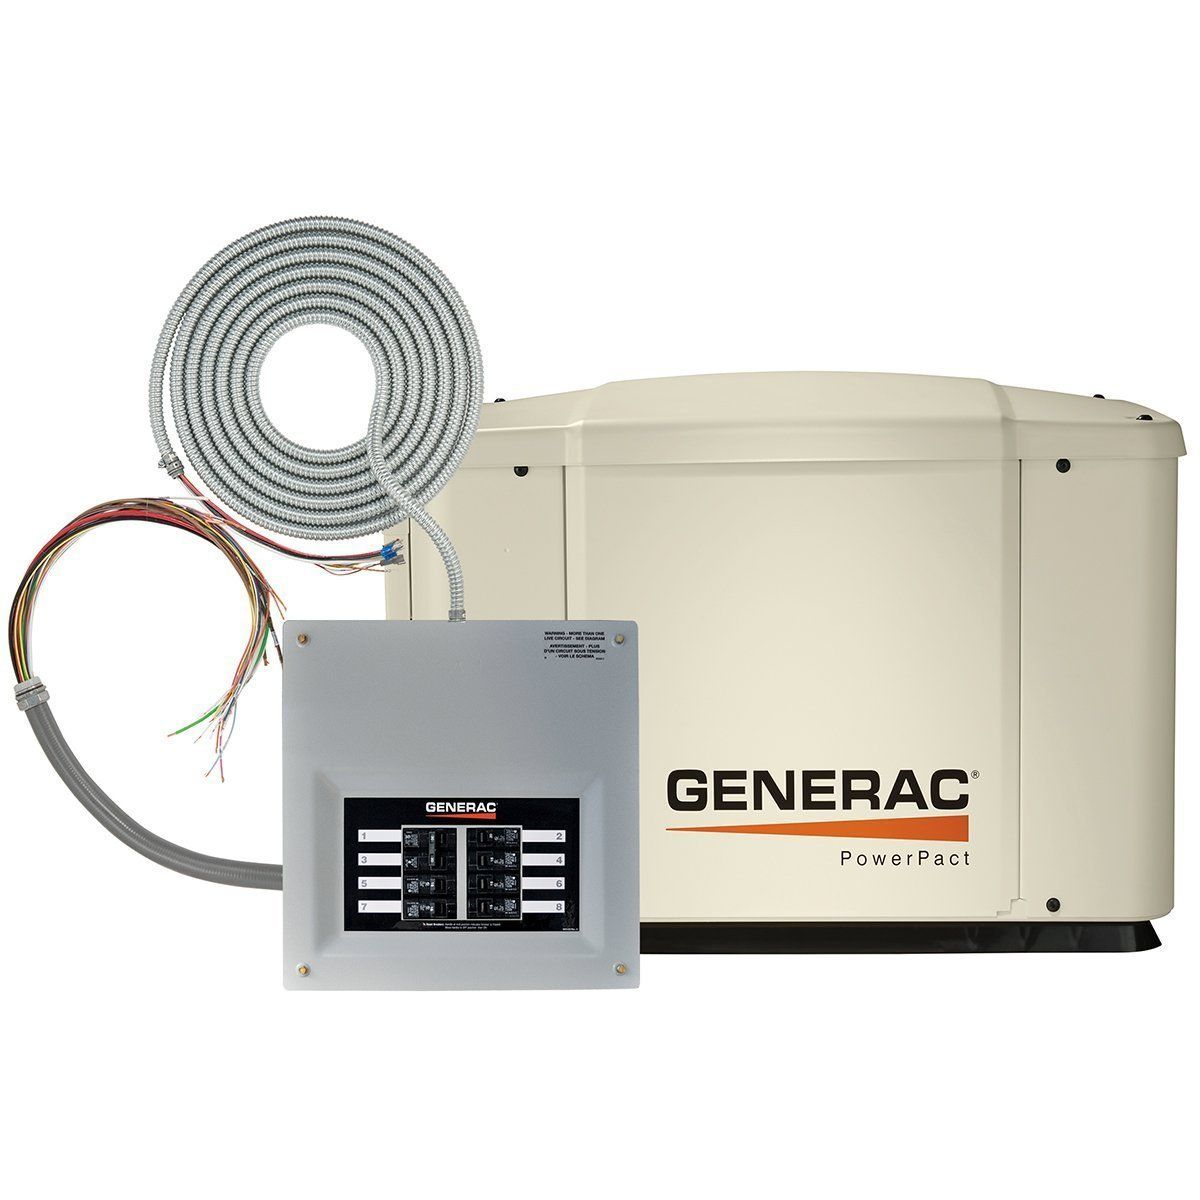 Generac 6518 PowerPact Series, 7kW Air Cooled Standby